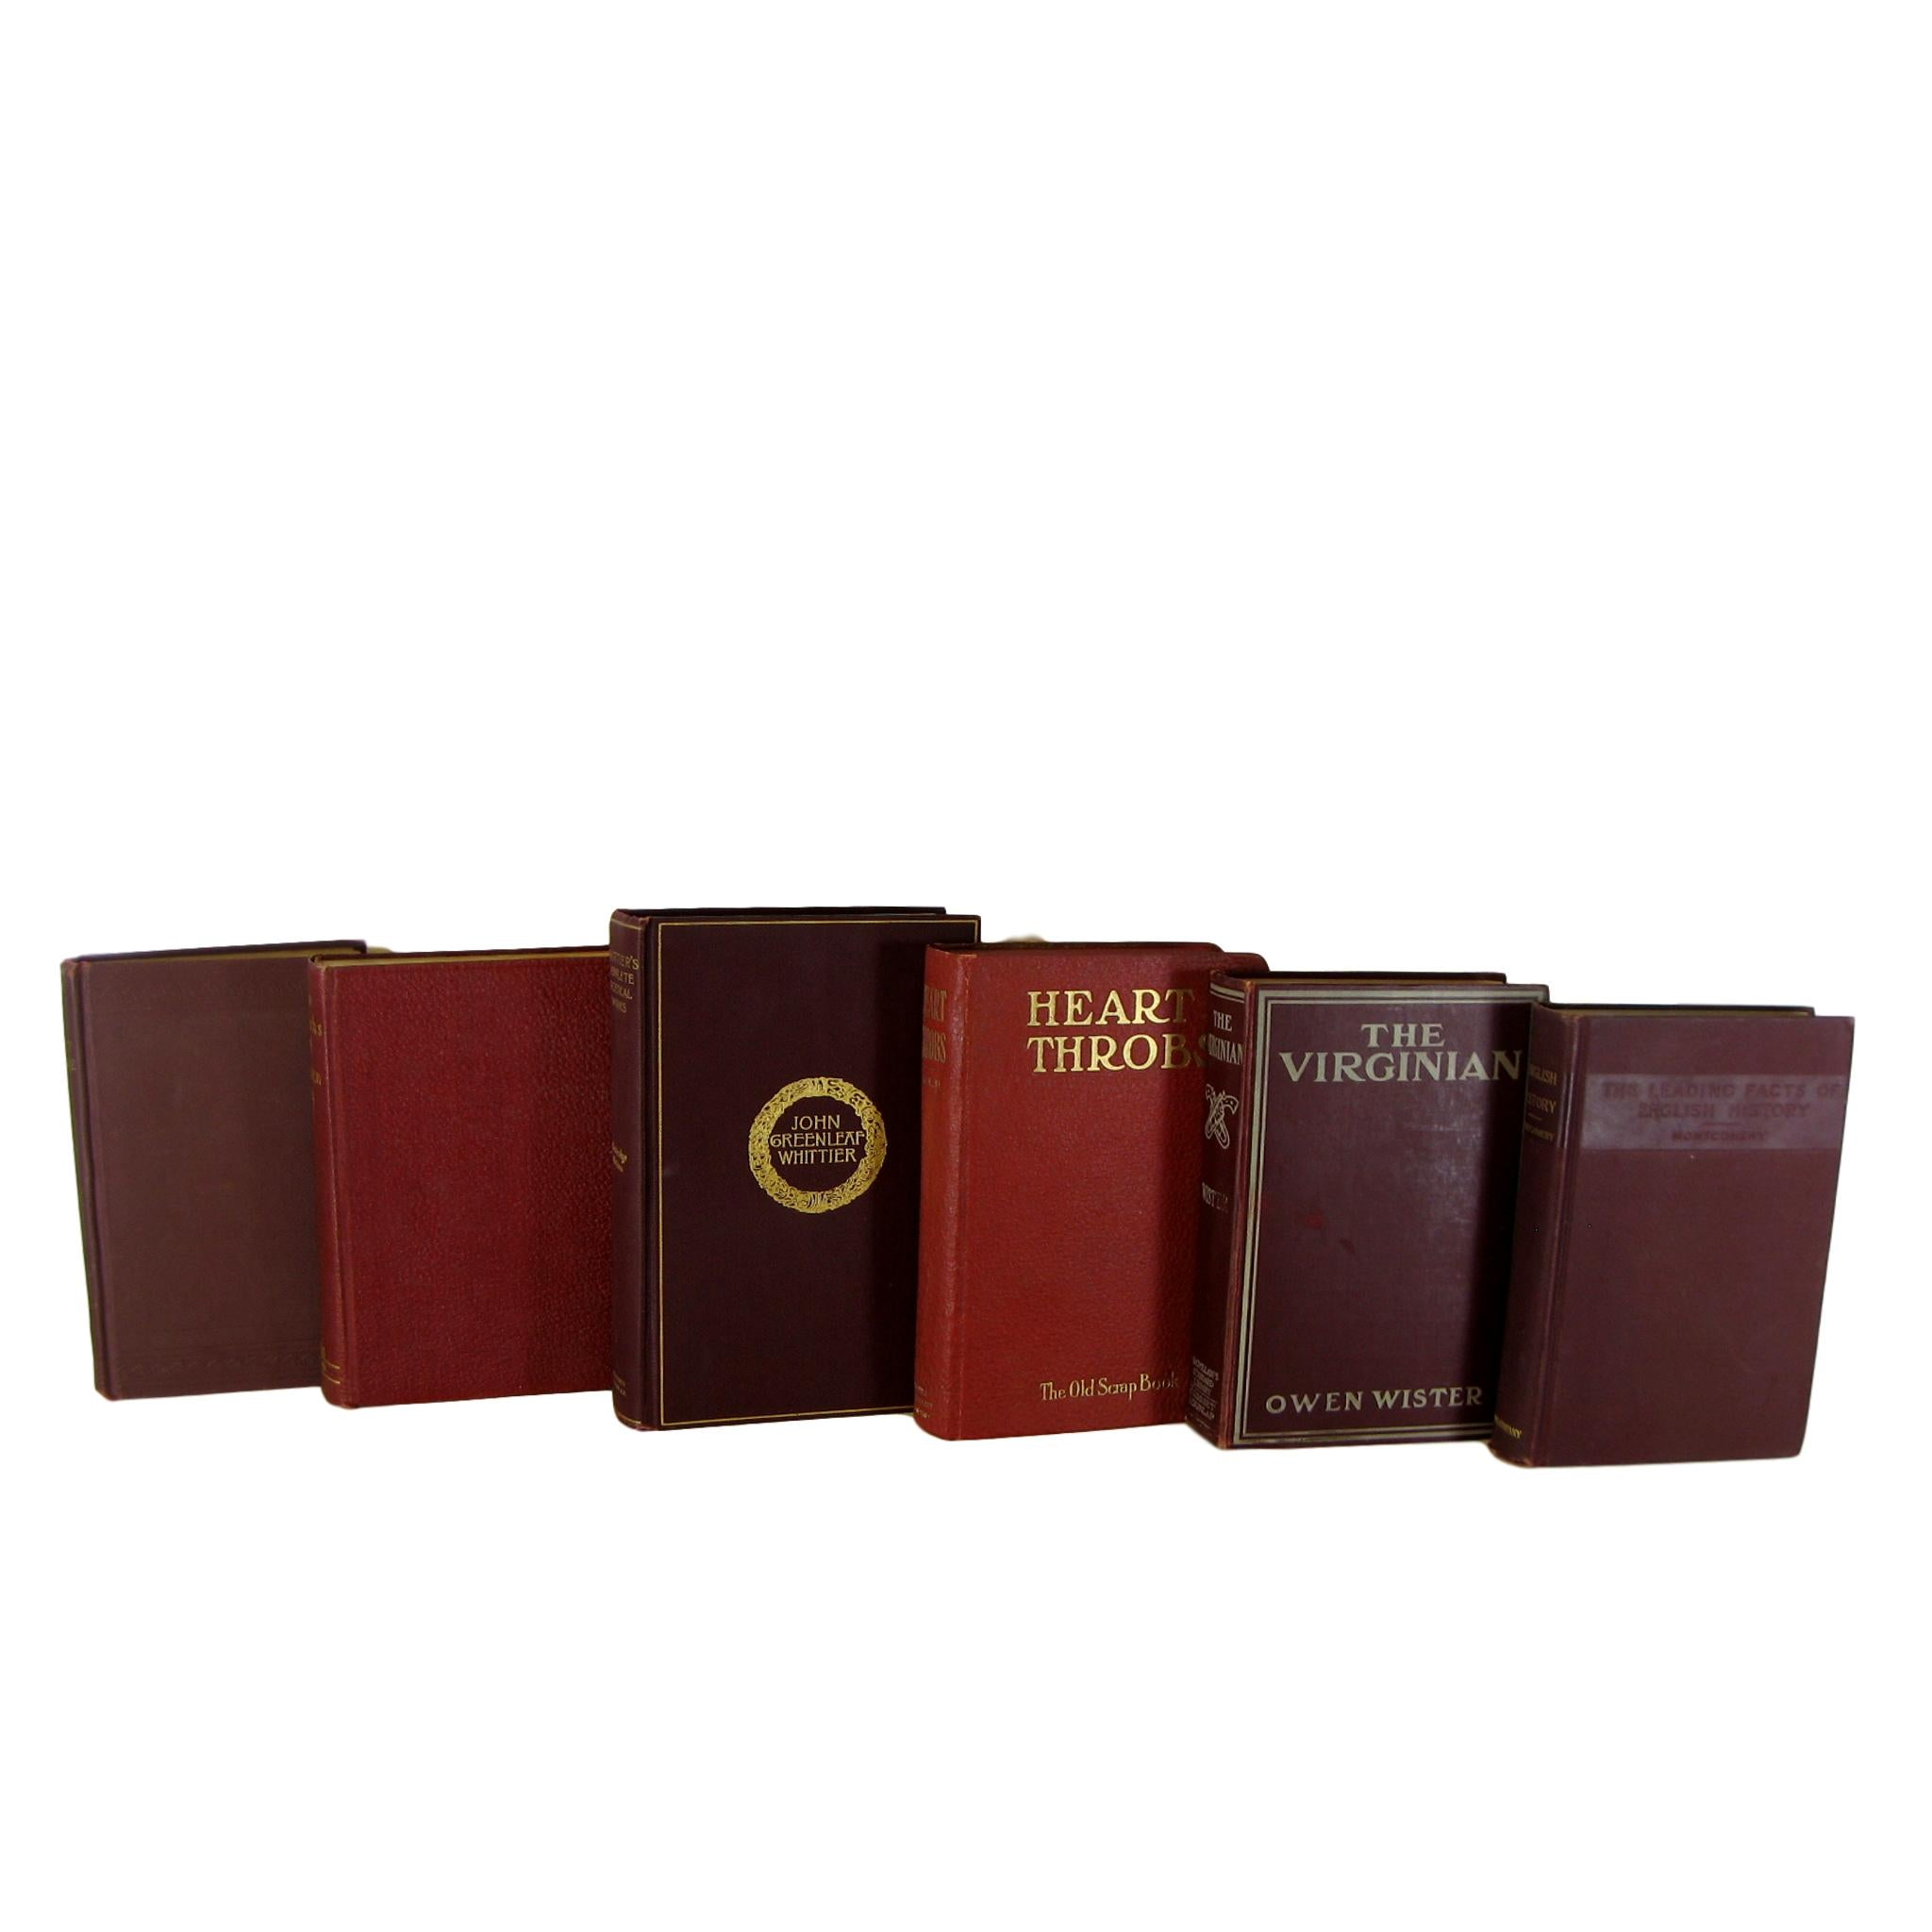 Decorative Book Set in Shades of Deep Reds and Burgundy, S/6